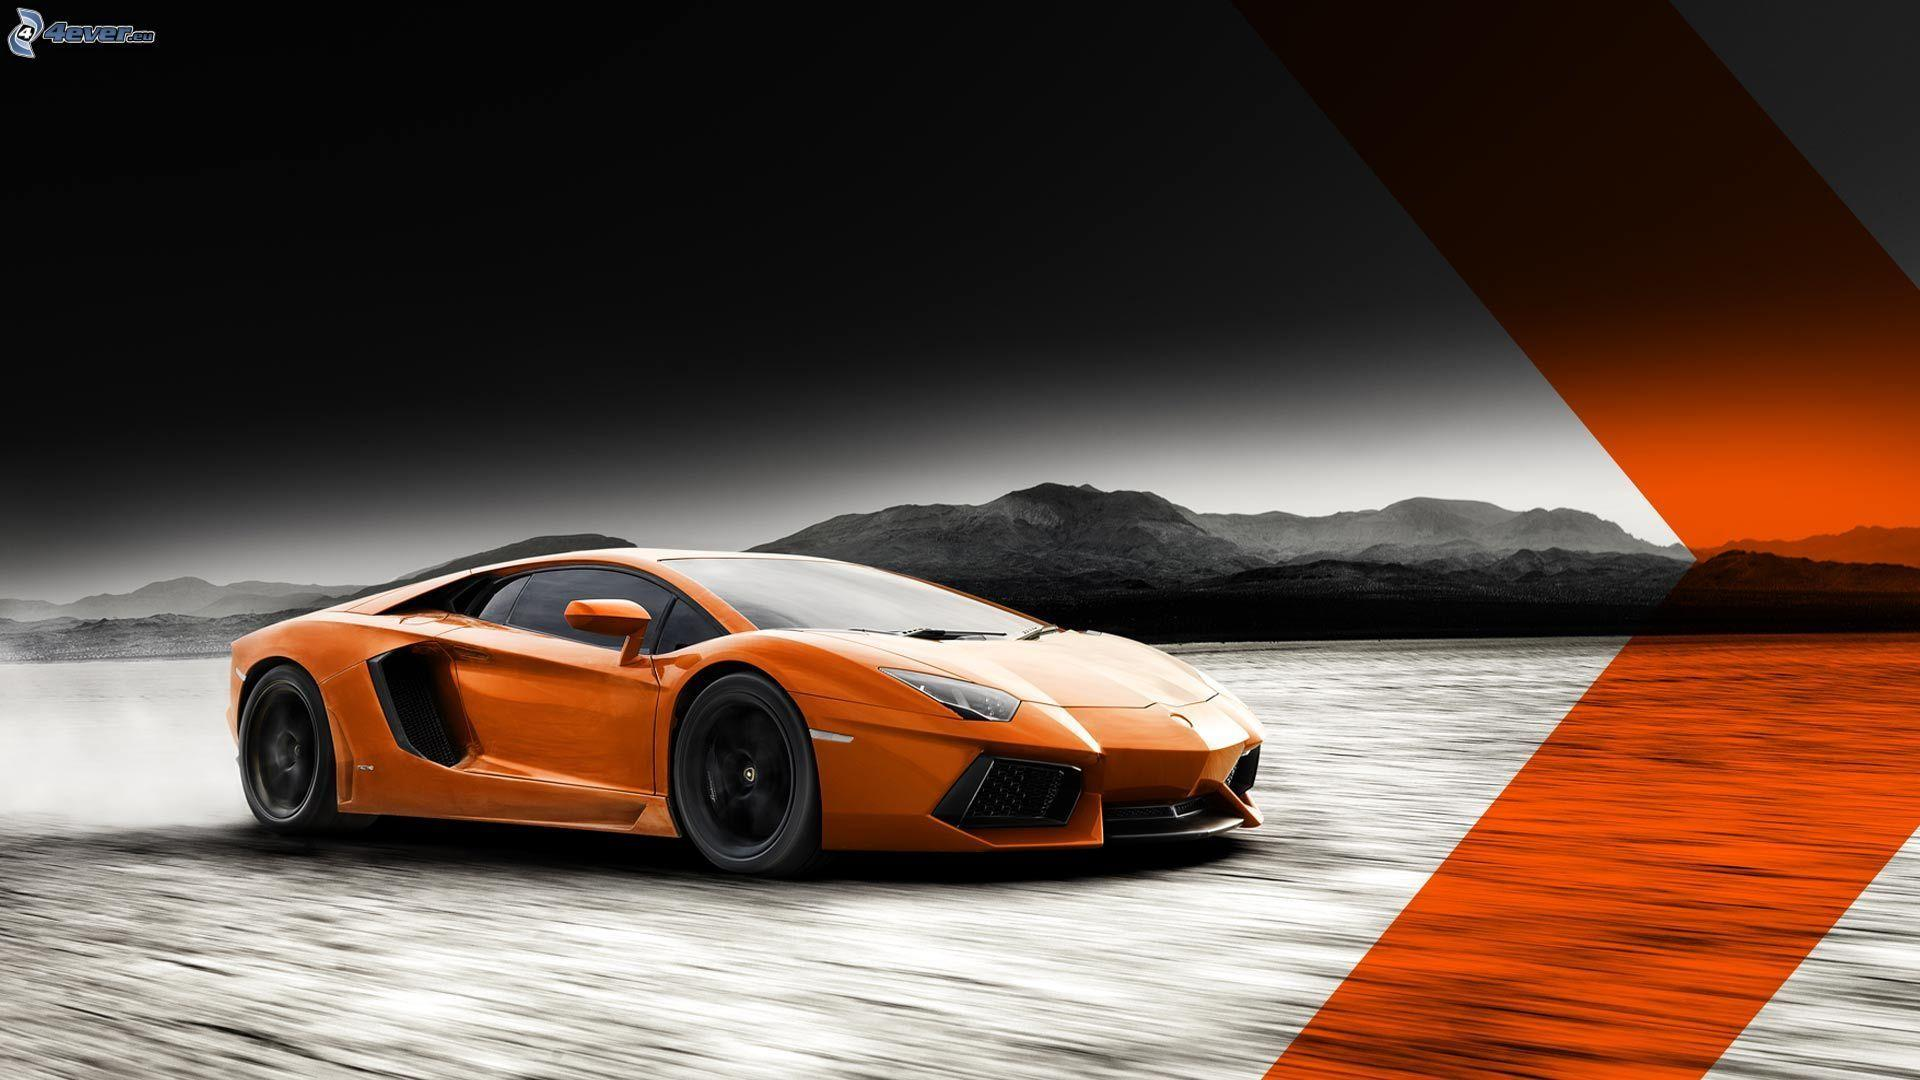 Lambo Ferrari Bugatti Car Hd Wallpaper Theme Top Speed Motors